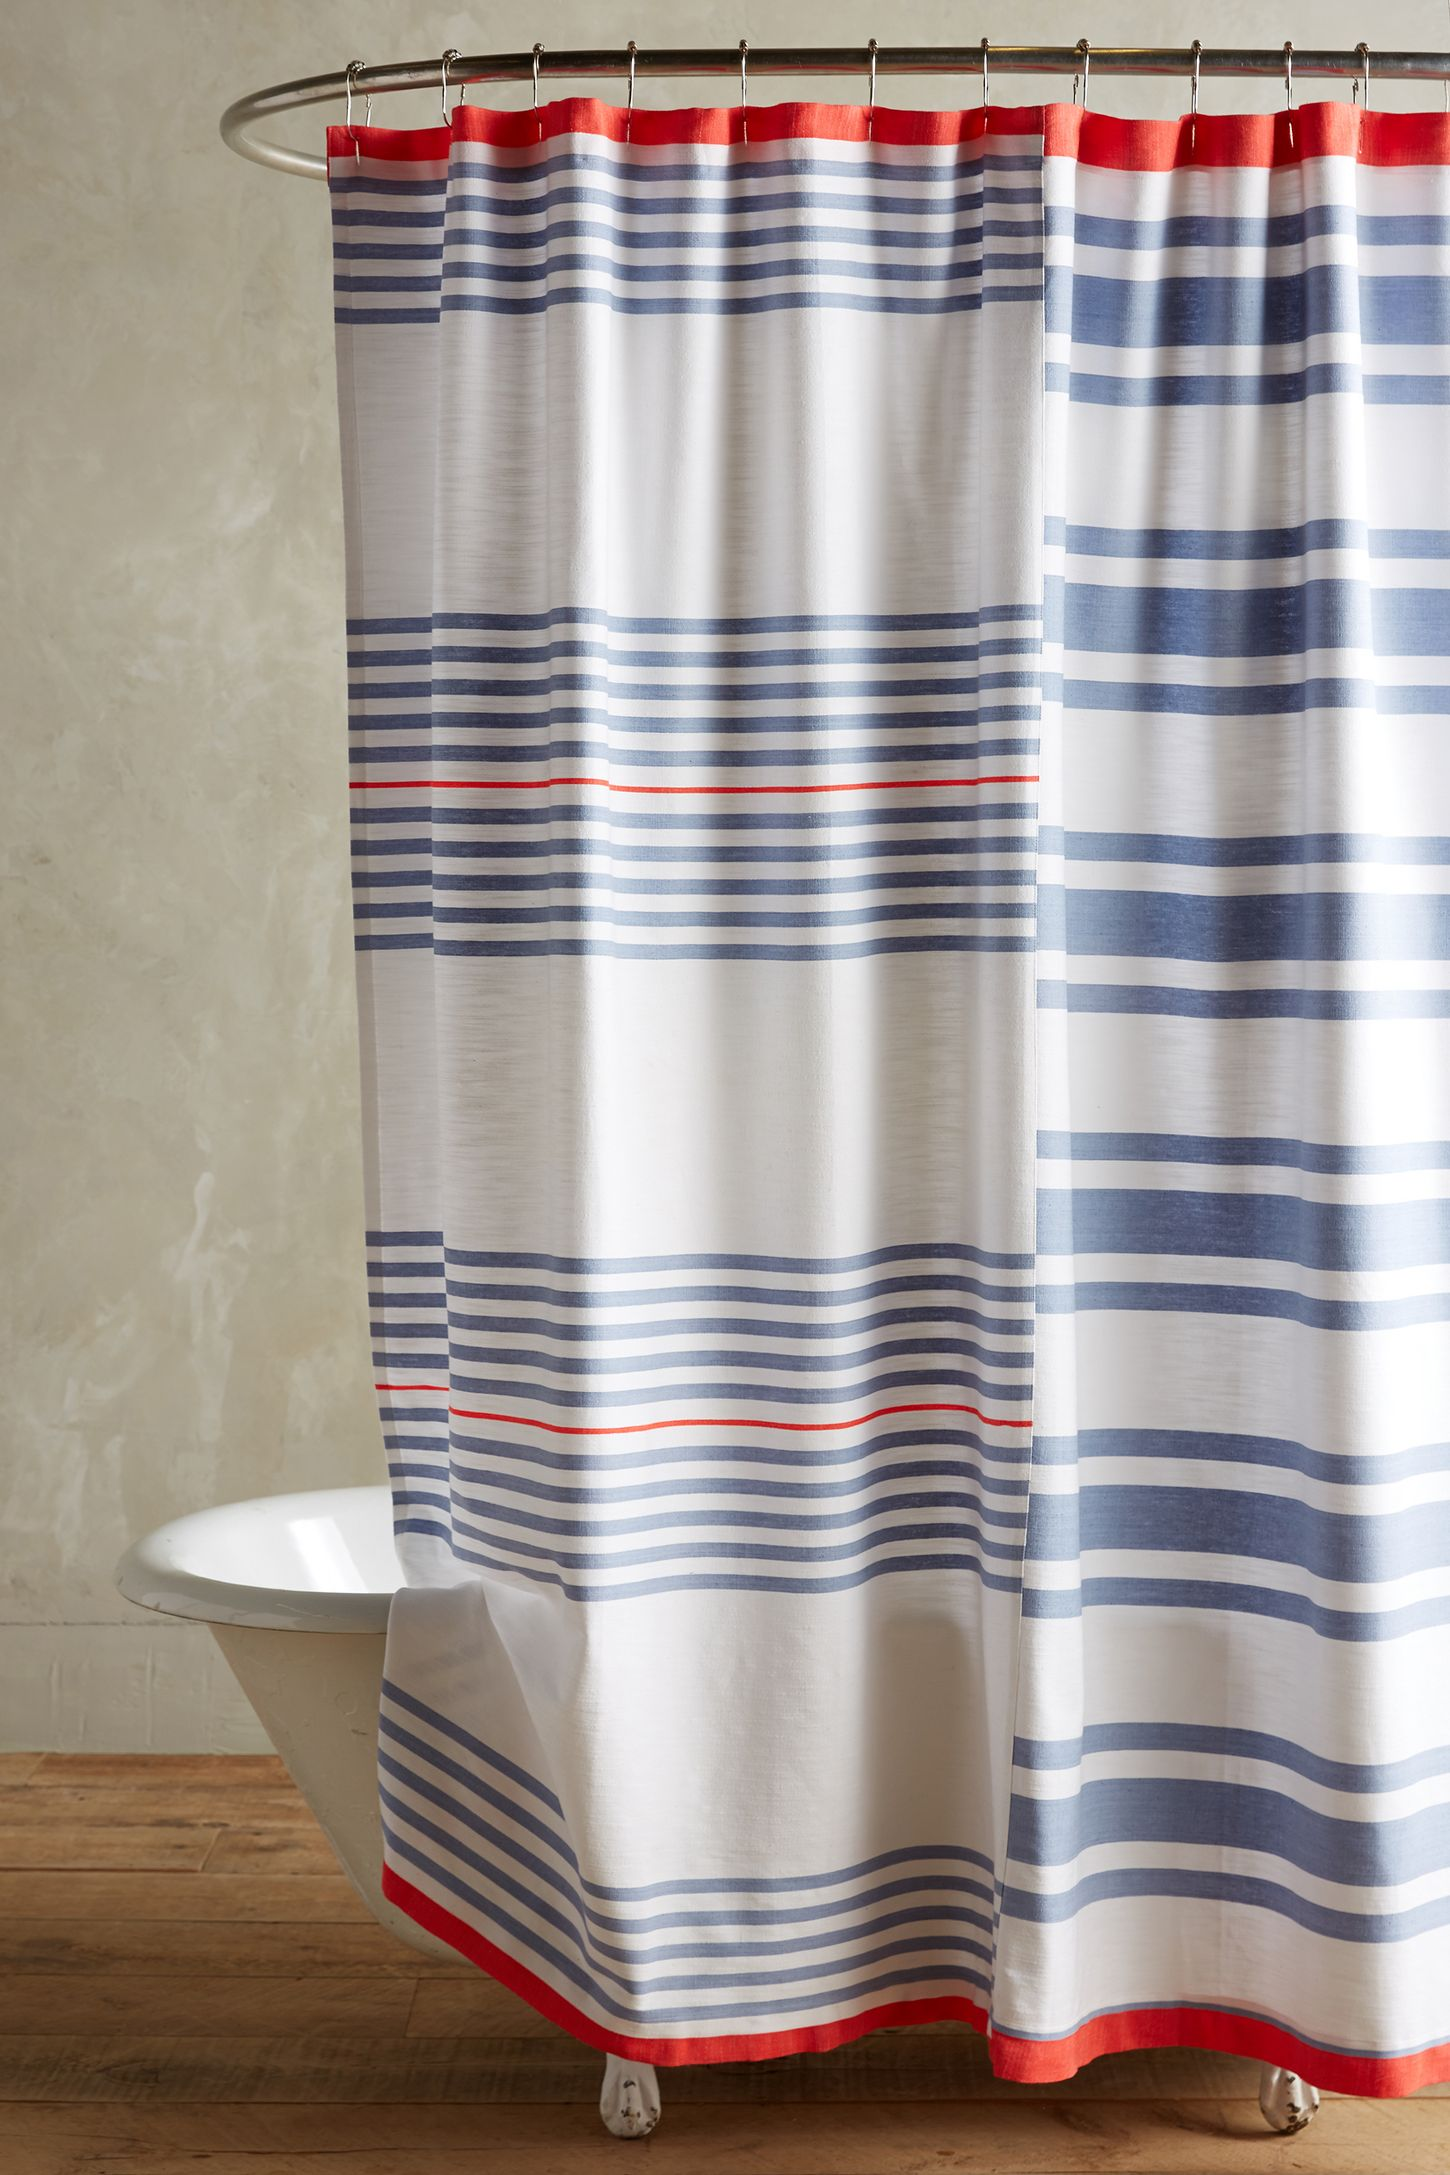 Red White And Blue Shower Curtain.  Maleda Shower Curtain Anthropologie